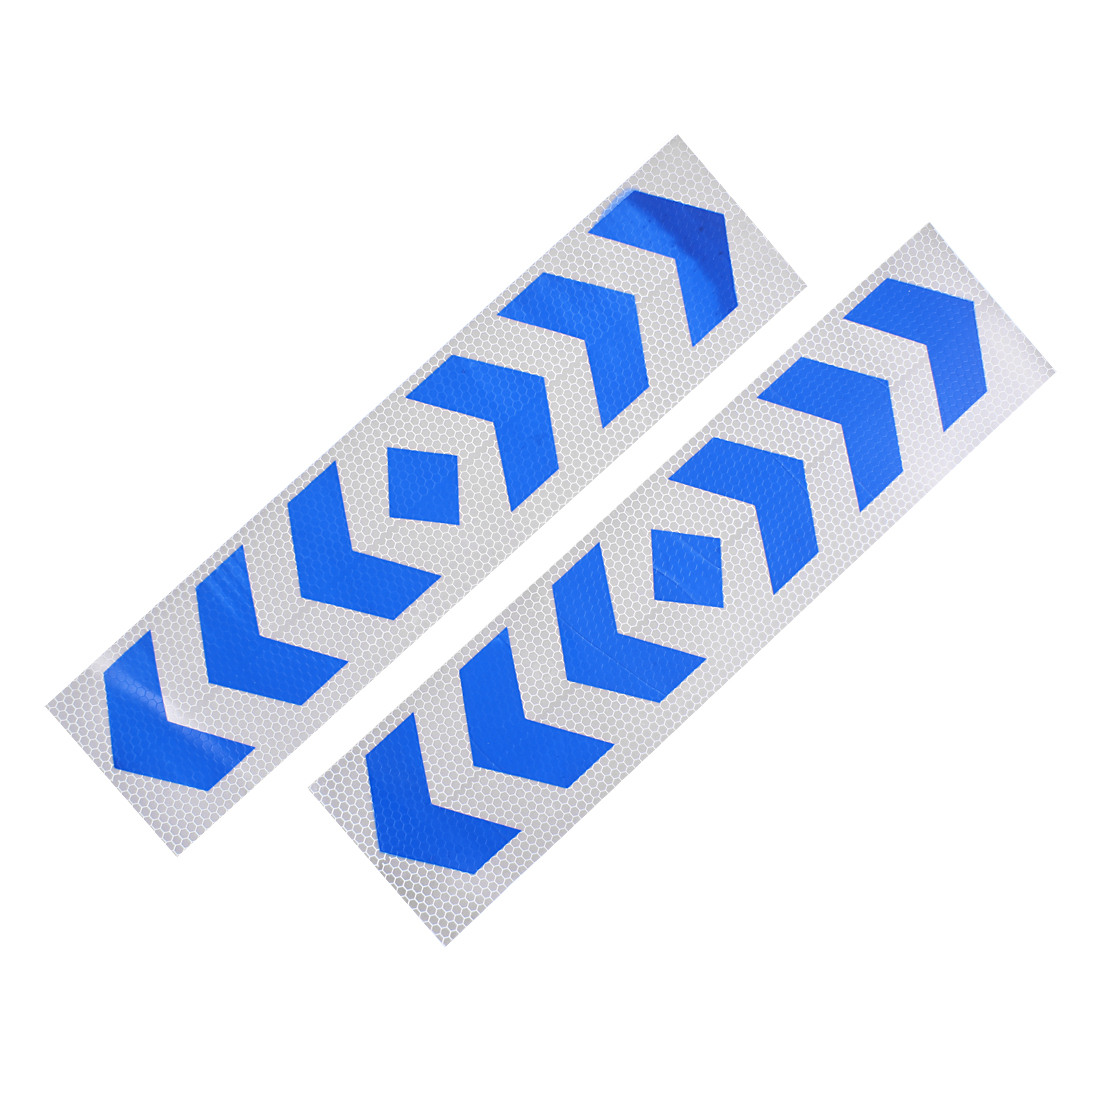 2 Pcs Self Adhesive Type Car Reflective Warning Sign Marking Sticker Tape White Blue